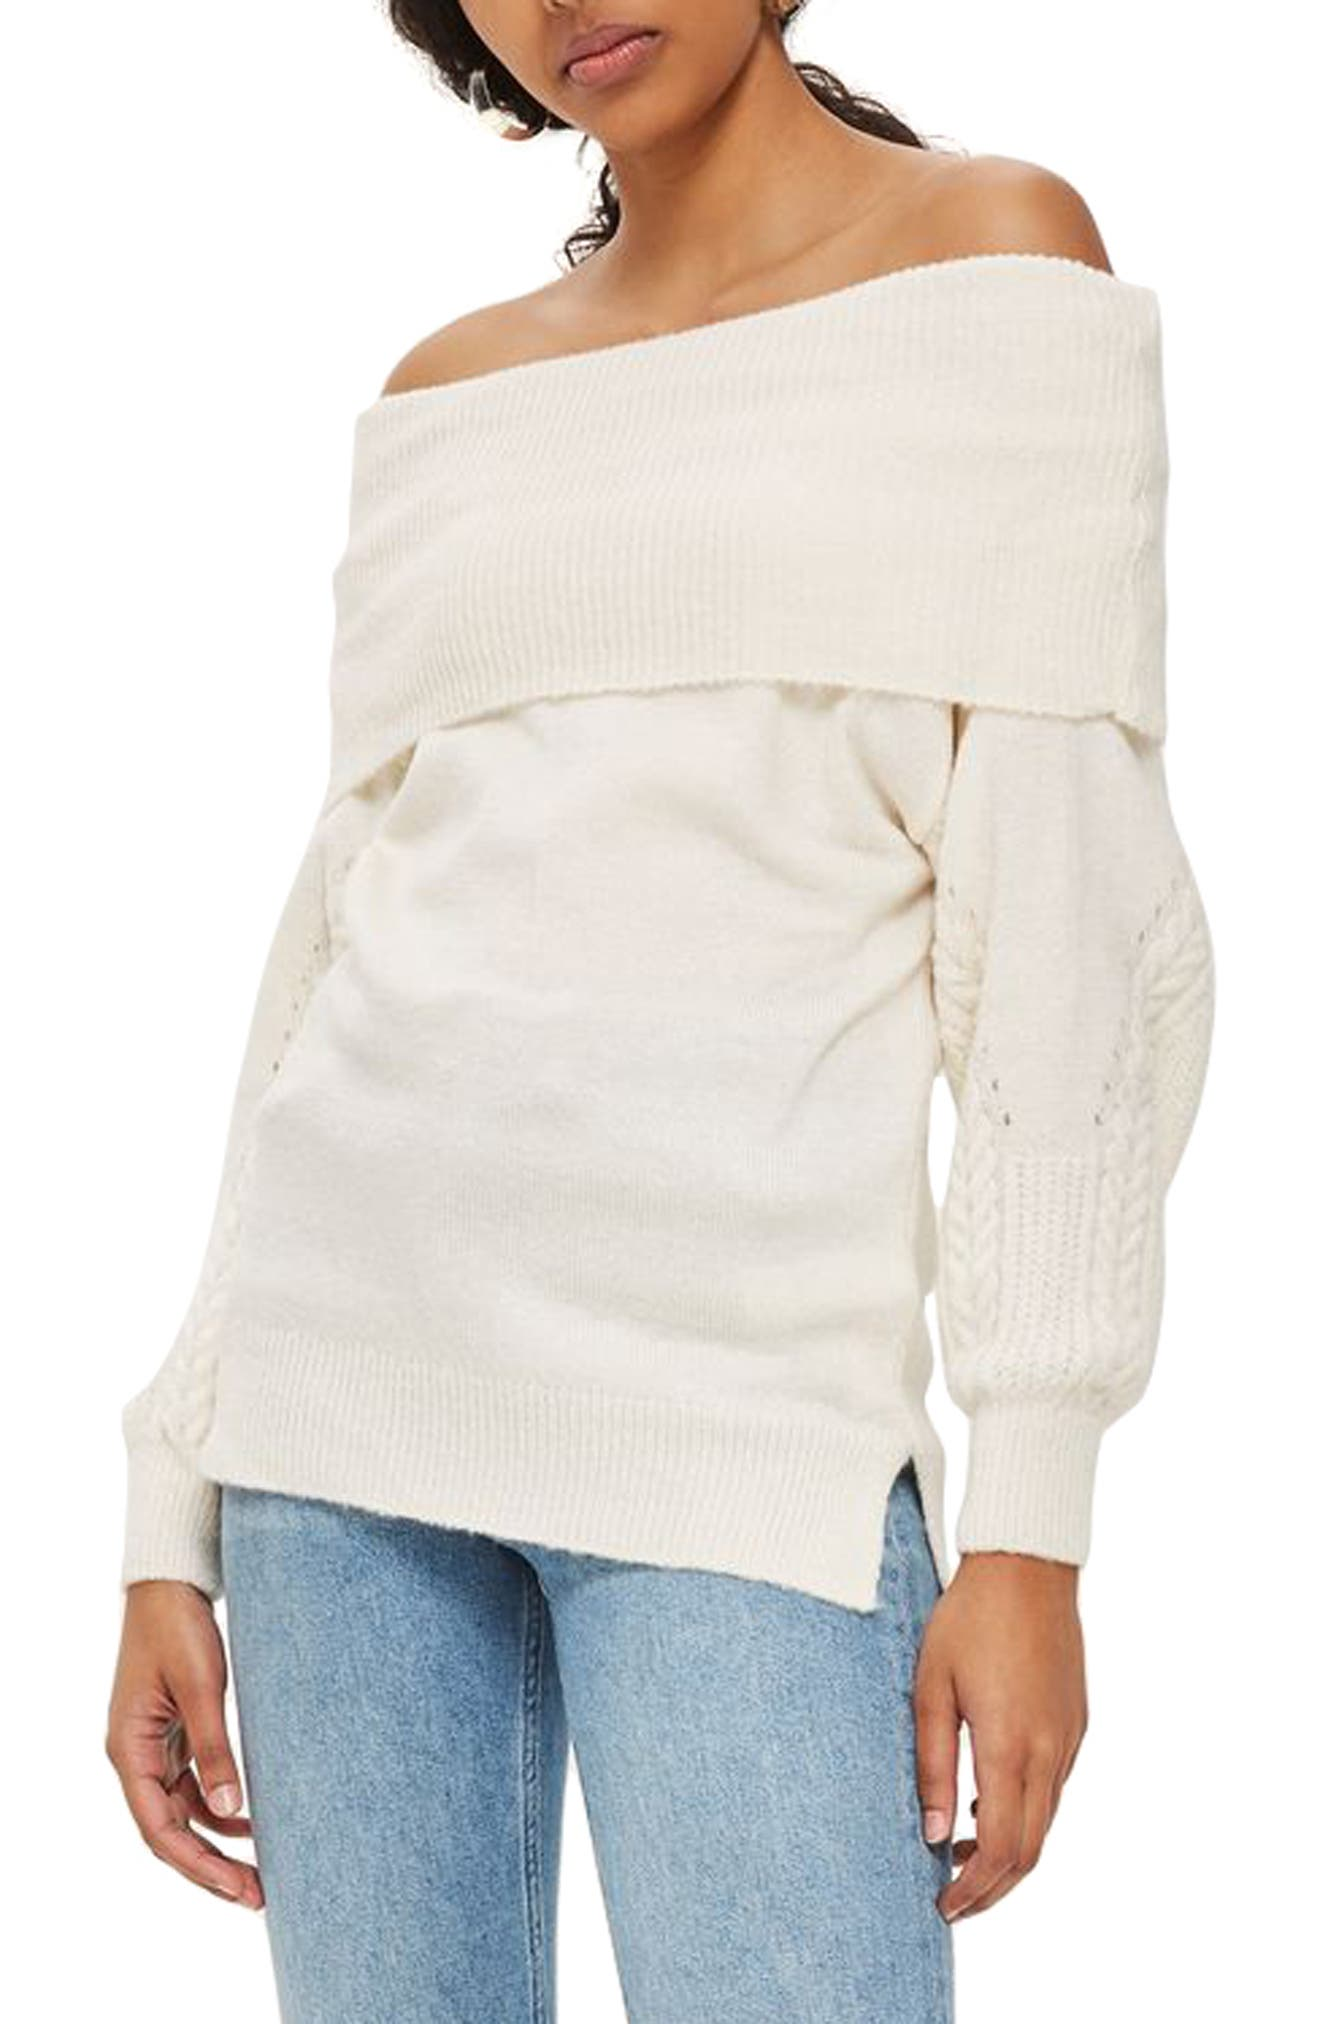 Balloon Sleeve Off the Shoulder Sweater,                             Main thumbnail 1, color,                             251